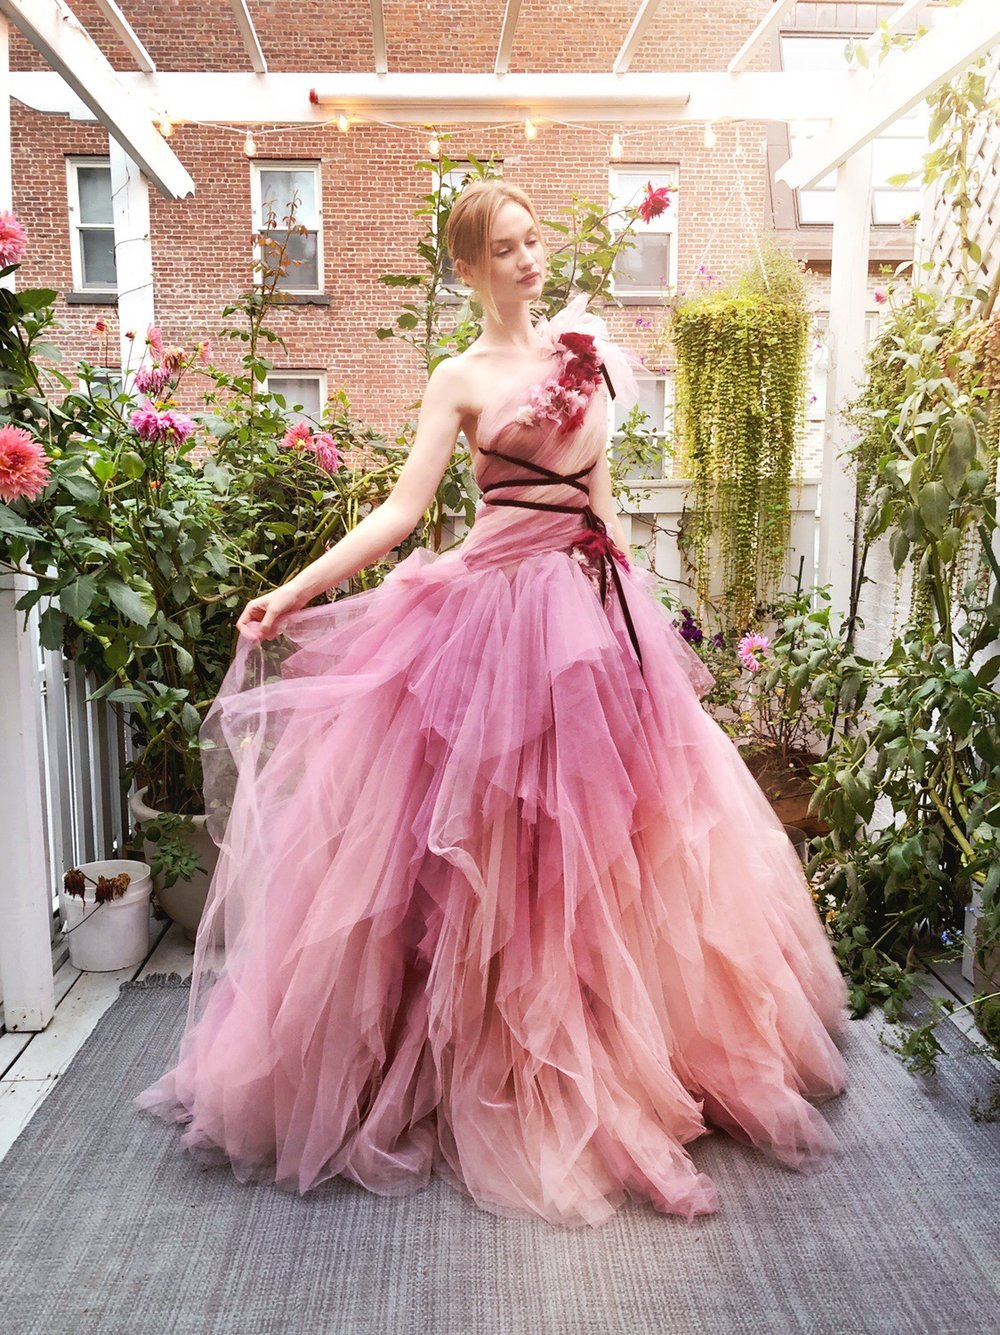 Clara McSweeney in Marchesa in PaperFashion's Studio Garden. Photo by Jessica Mack of BrownPaperBunny